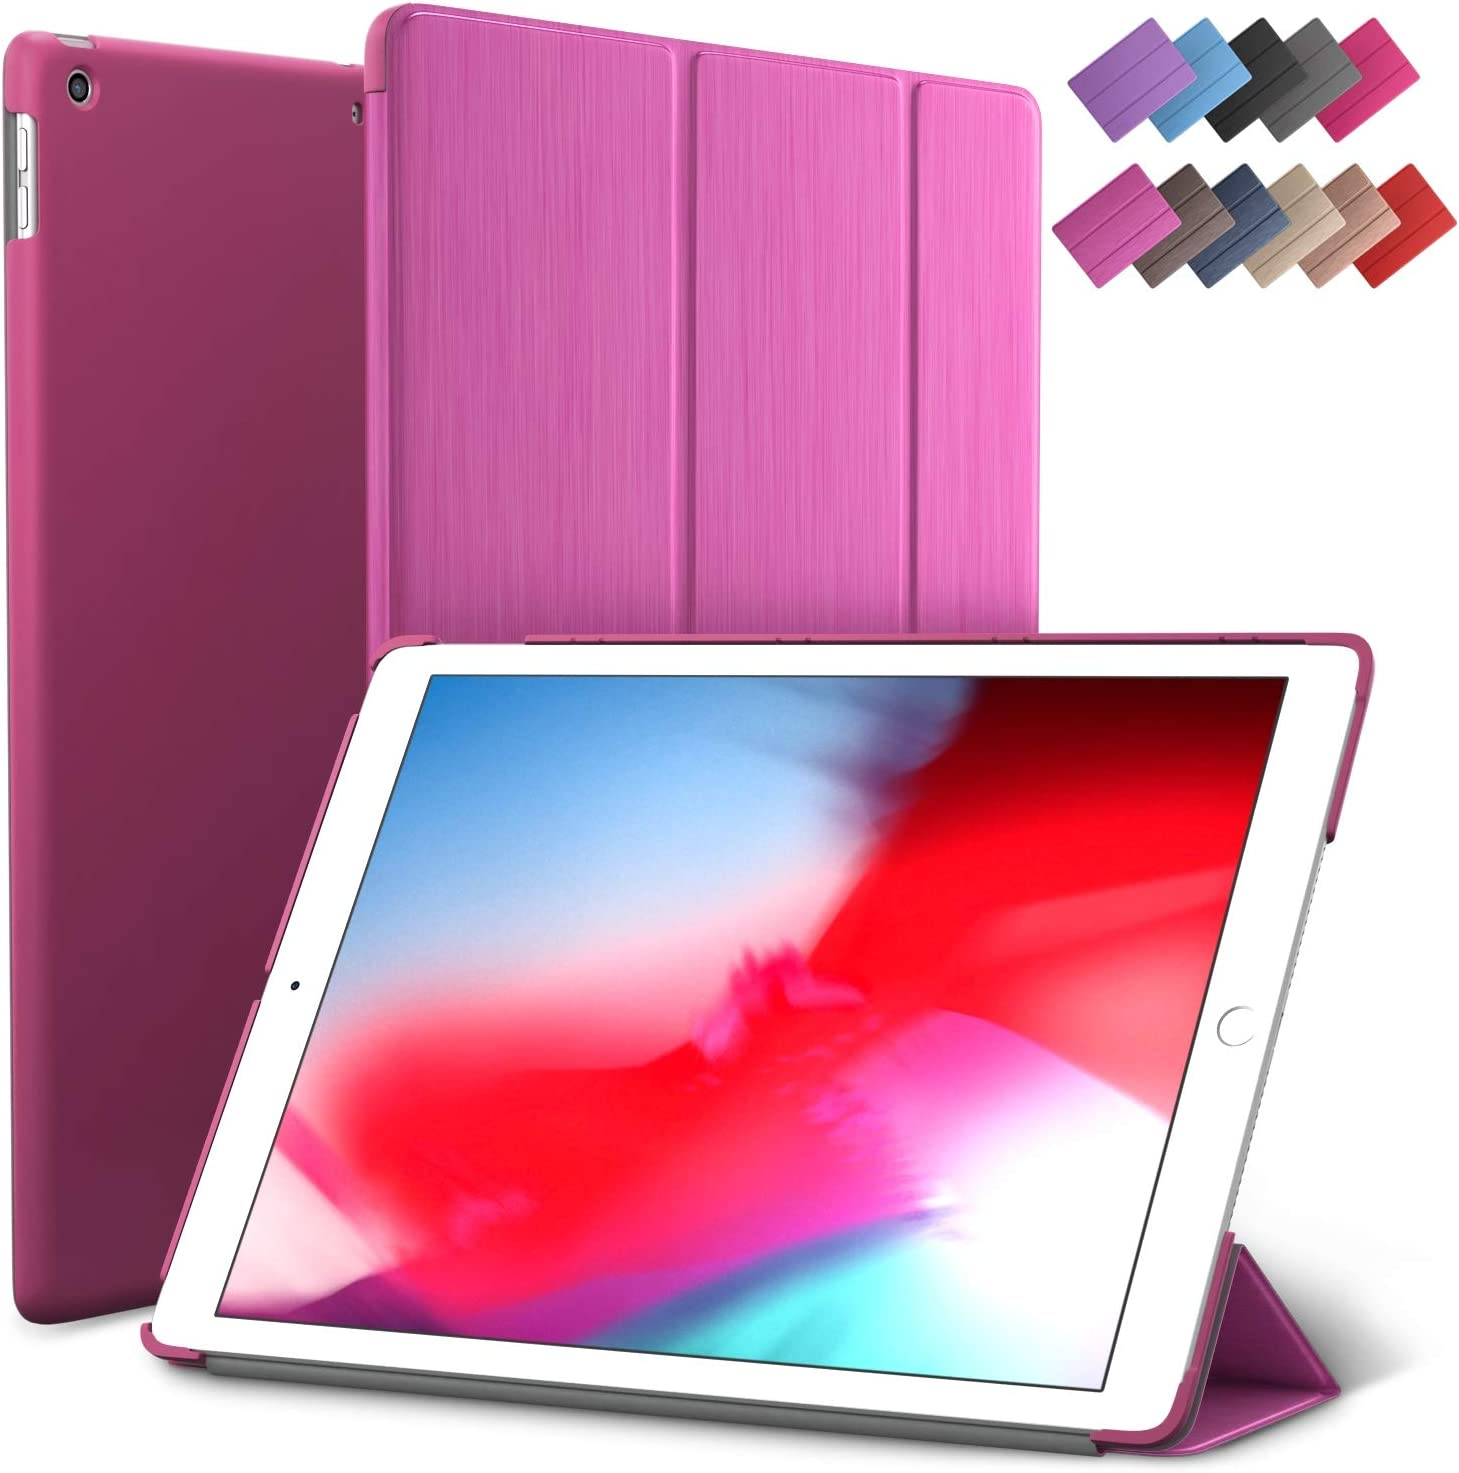 iPad Mini 5 case, ROARTZ Metallic Magenta Slim Fit Smart Rubber Coated Folio Case Hard Cover Light-Weight Wake/Sleep for Apple iPad Mini 5th Generation 2019 Model A2133 A2124 A2126 7.9-inch Display